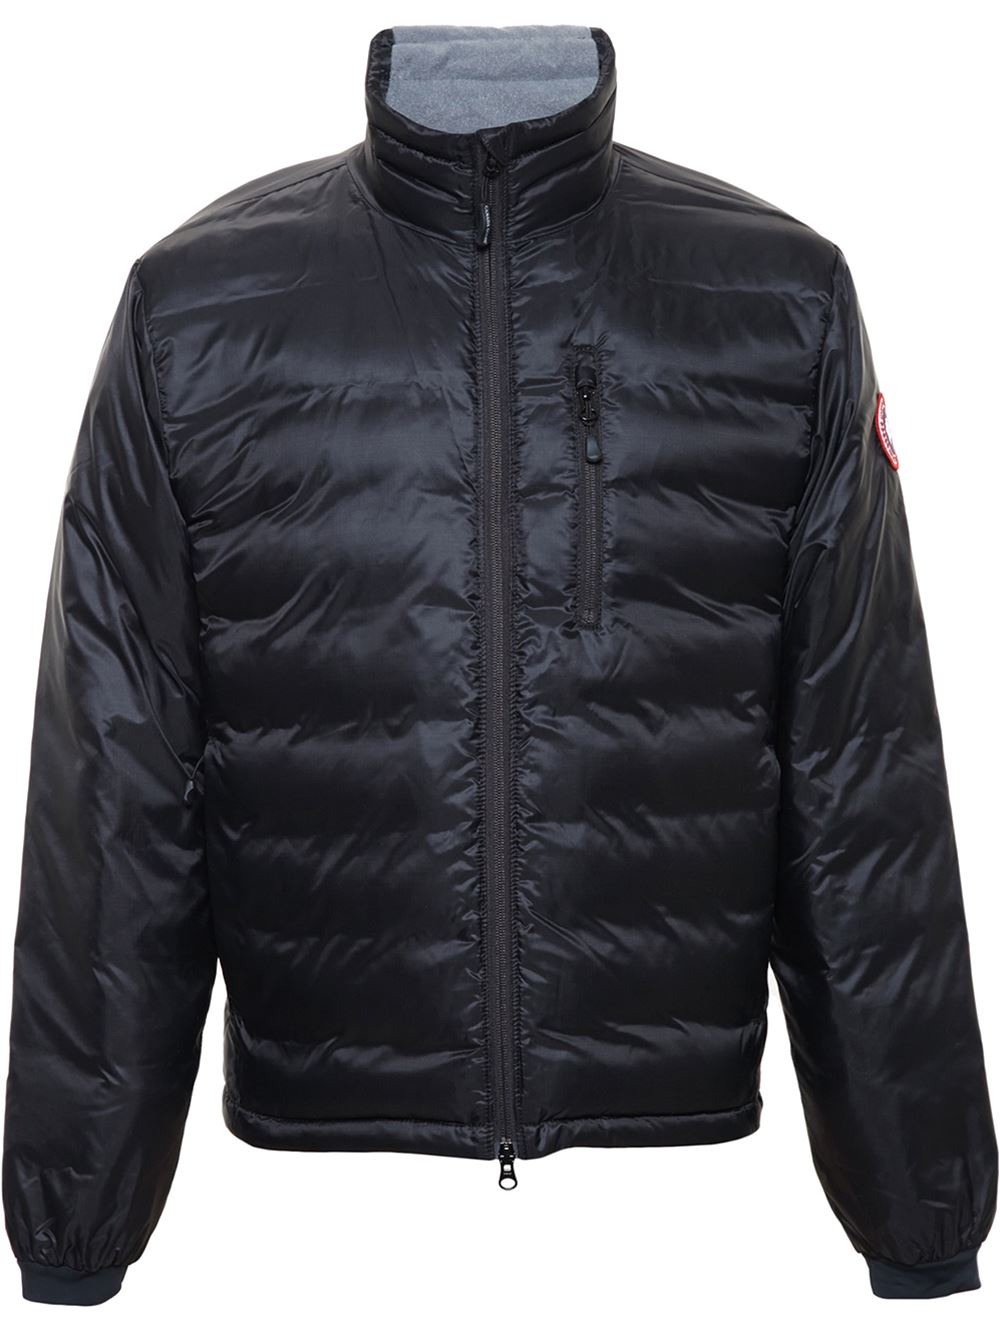 Canada Goose jackets replica authentic - Canada goose 'lodge' Padded Jacket in Black for Men | Lyst